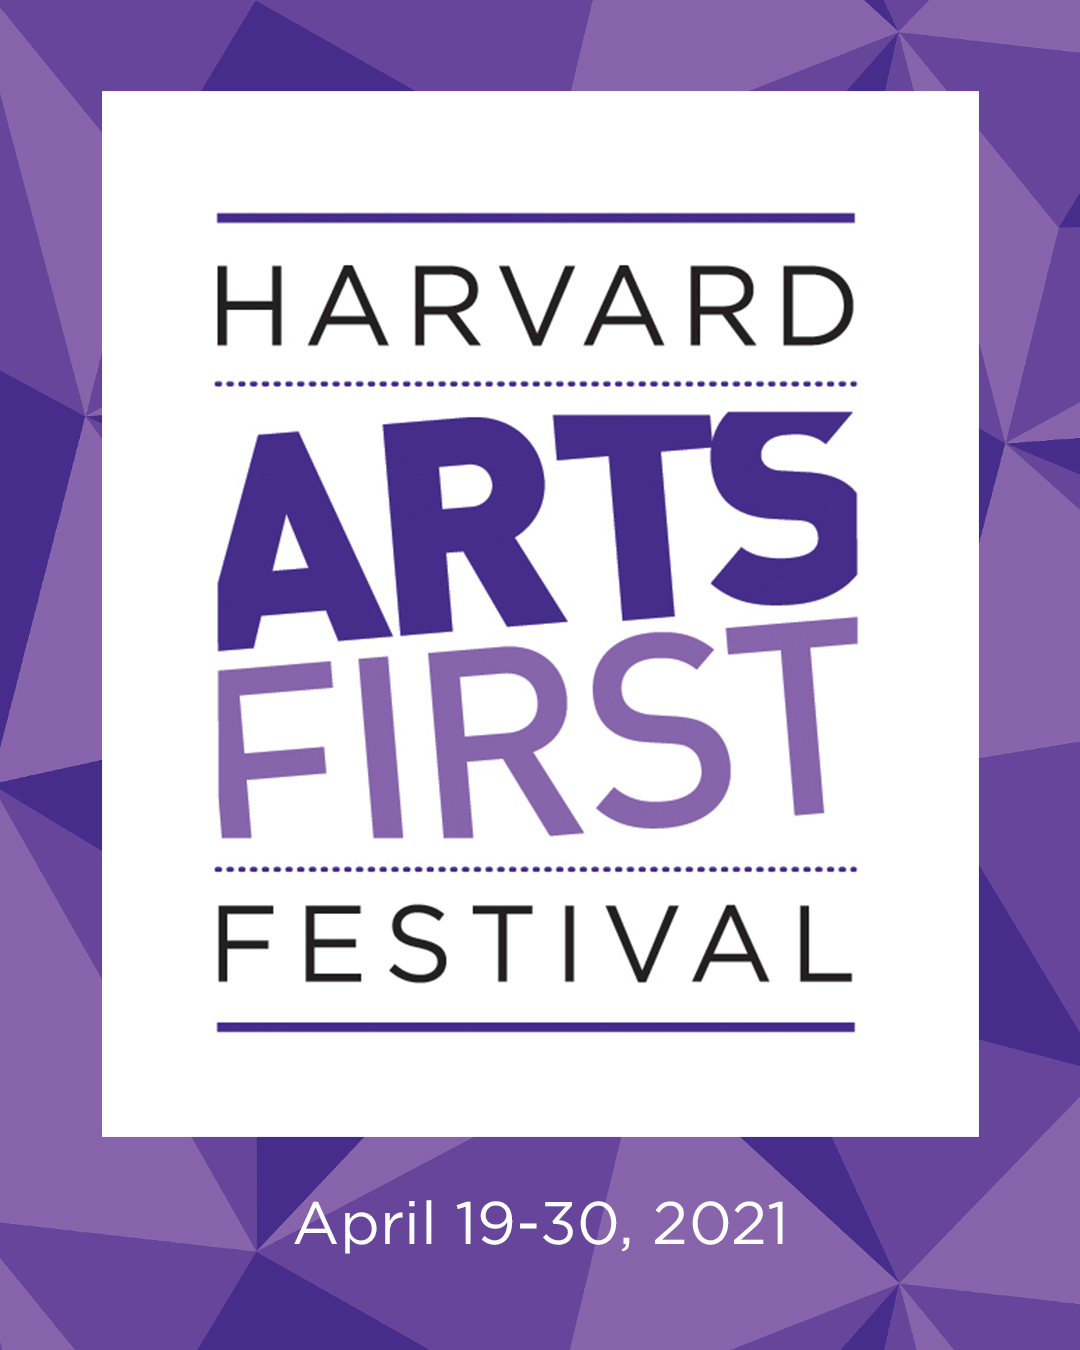 ARTS FIRST Festival is on April 19-20, 2021